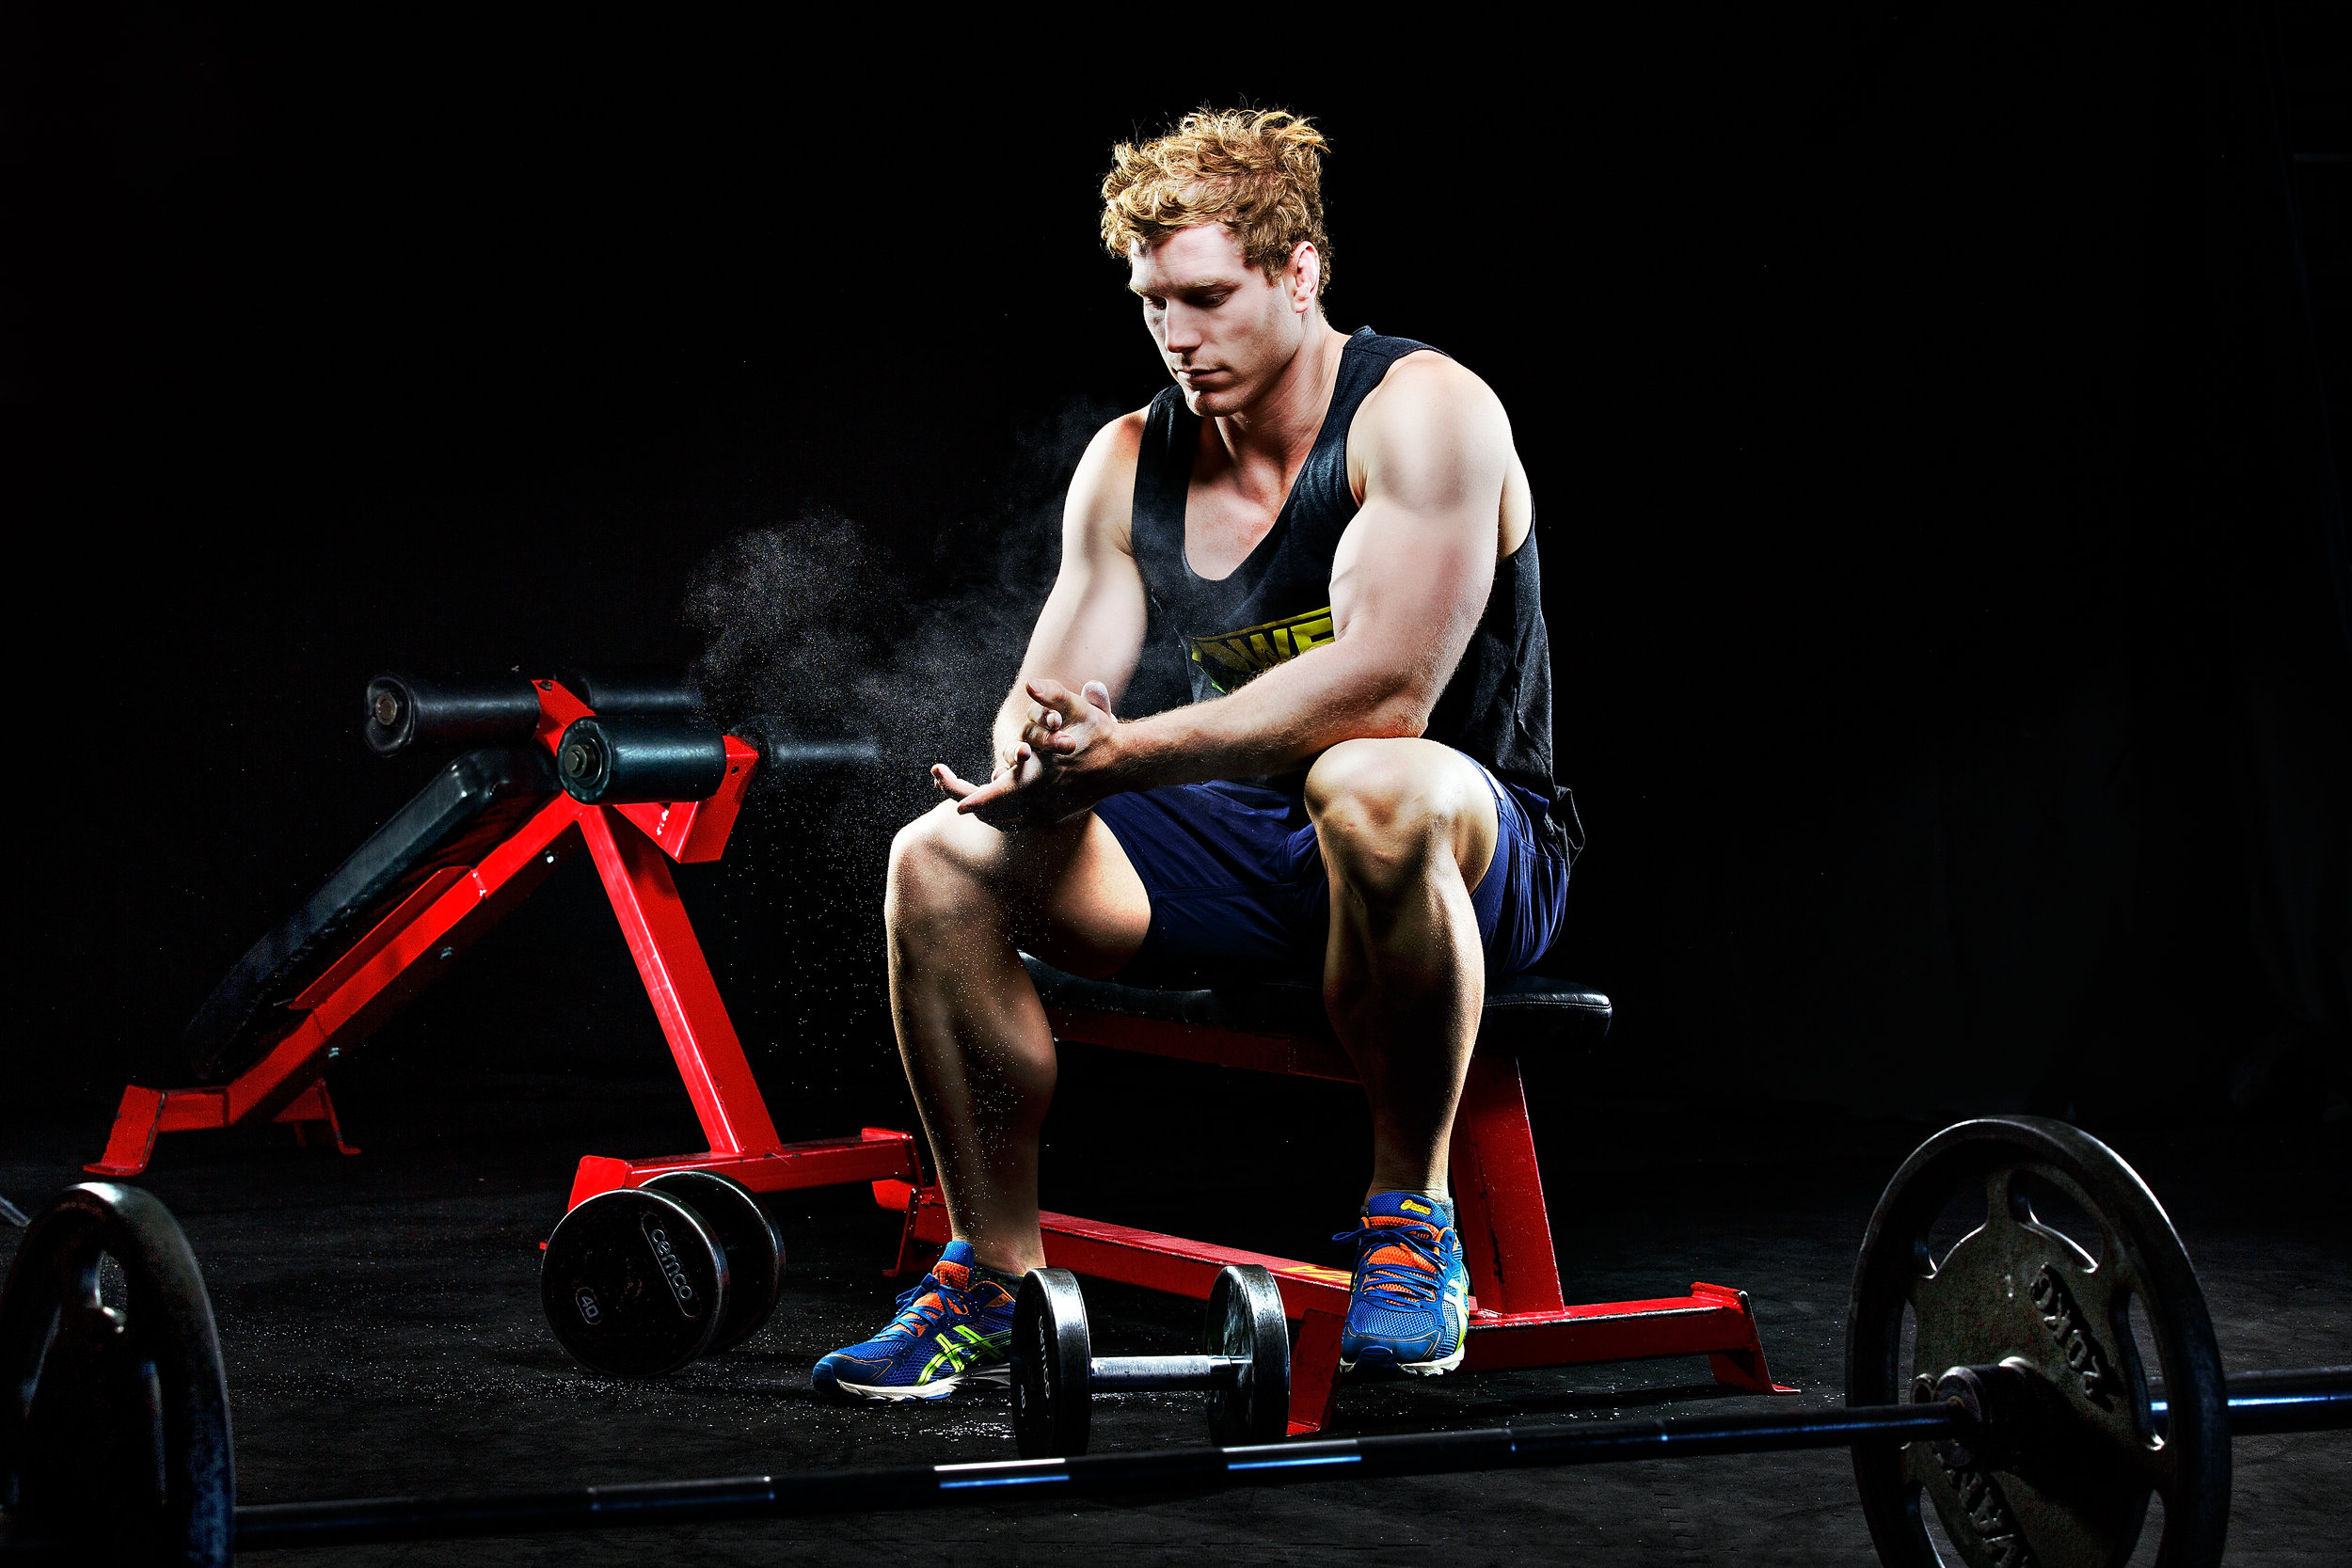 Rugby player David Pocock poses in the gym for a strong athlete style editorial portrait.